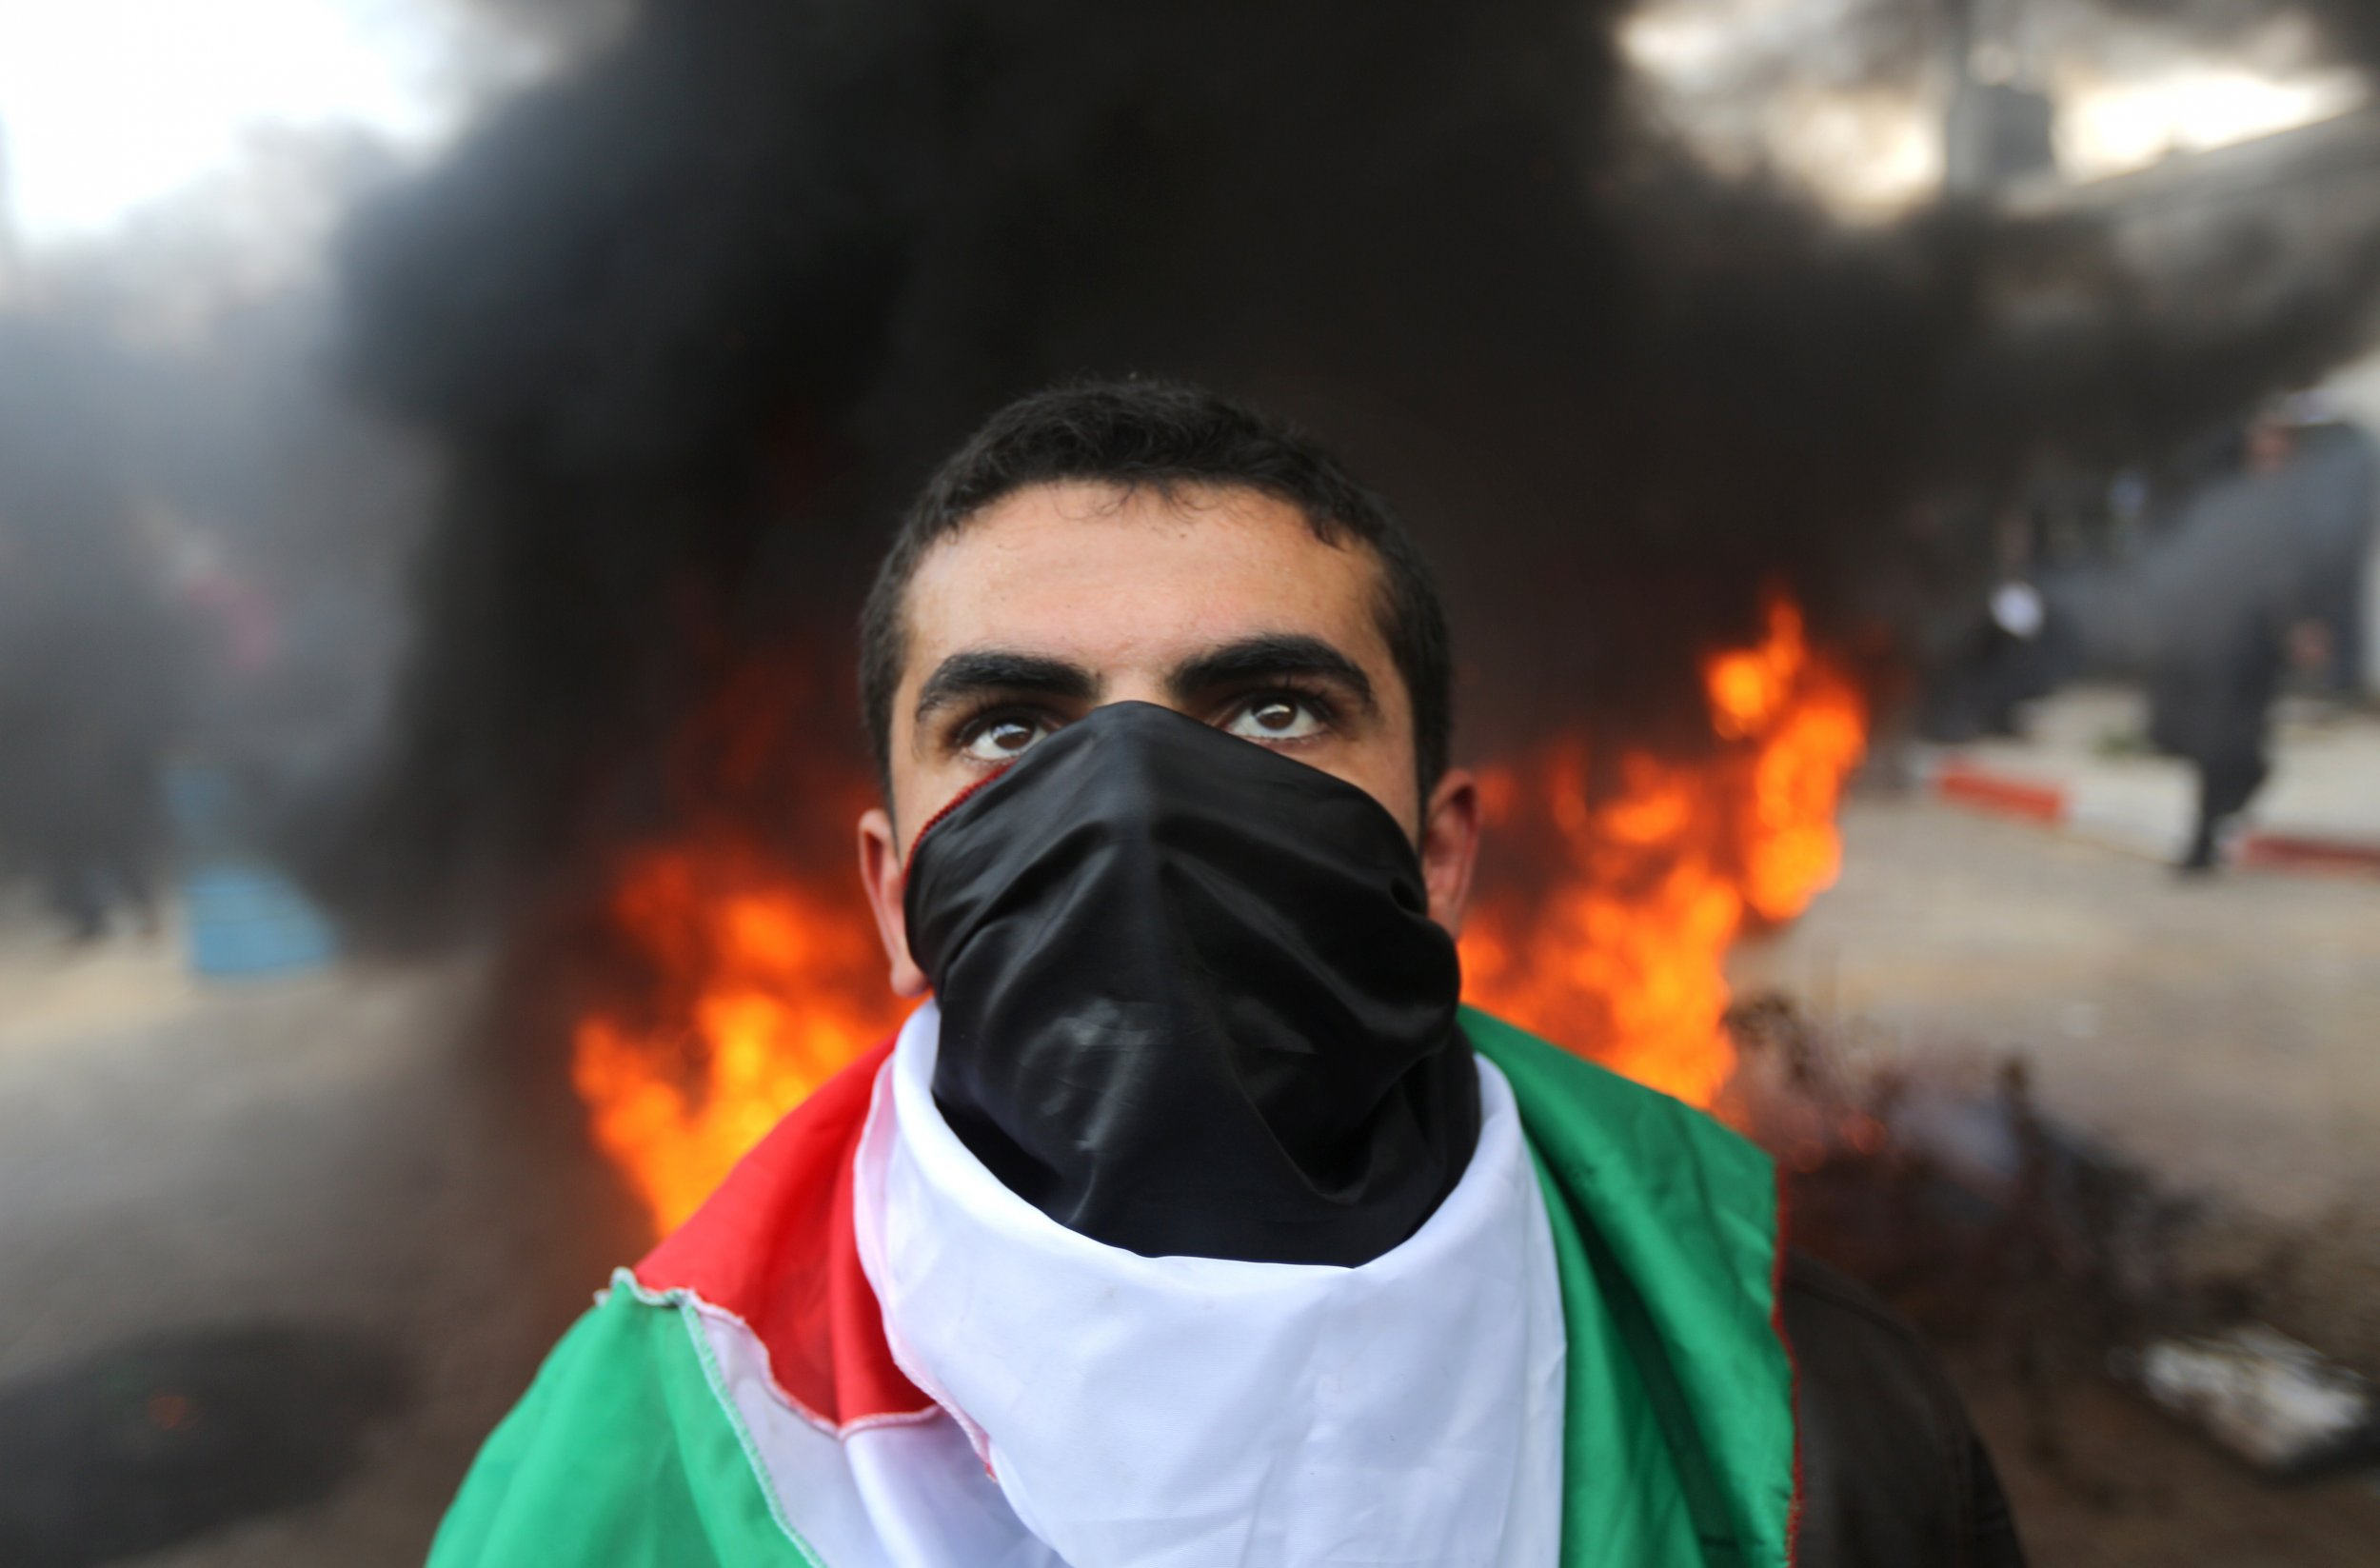 Palestinian protester in the Gaza Strip